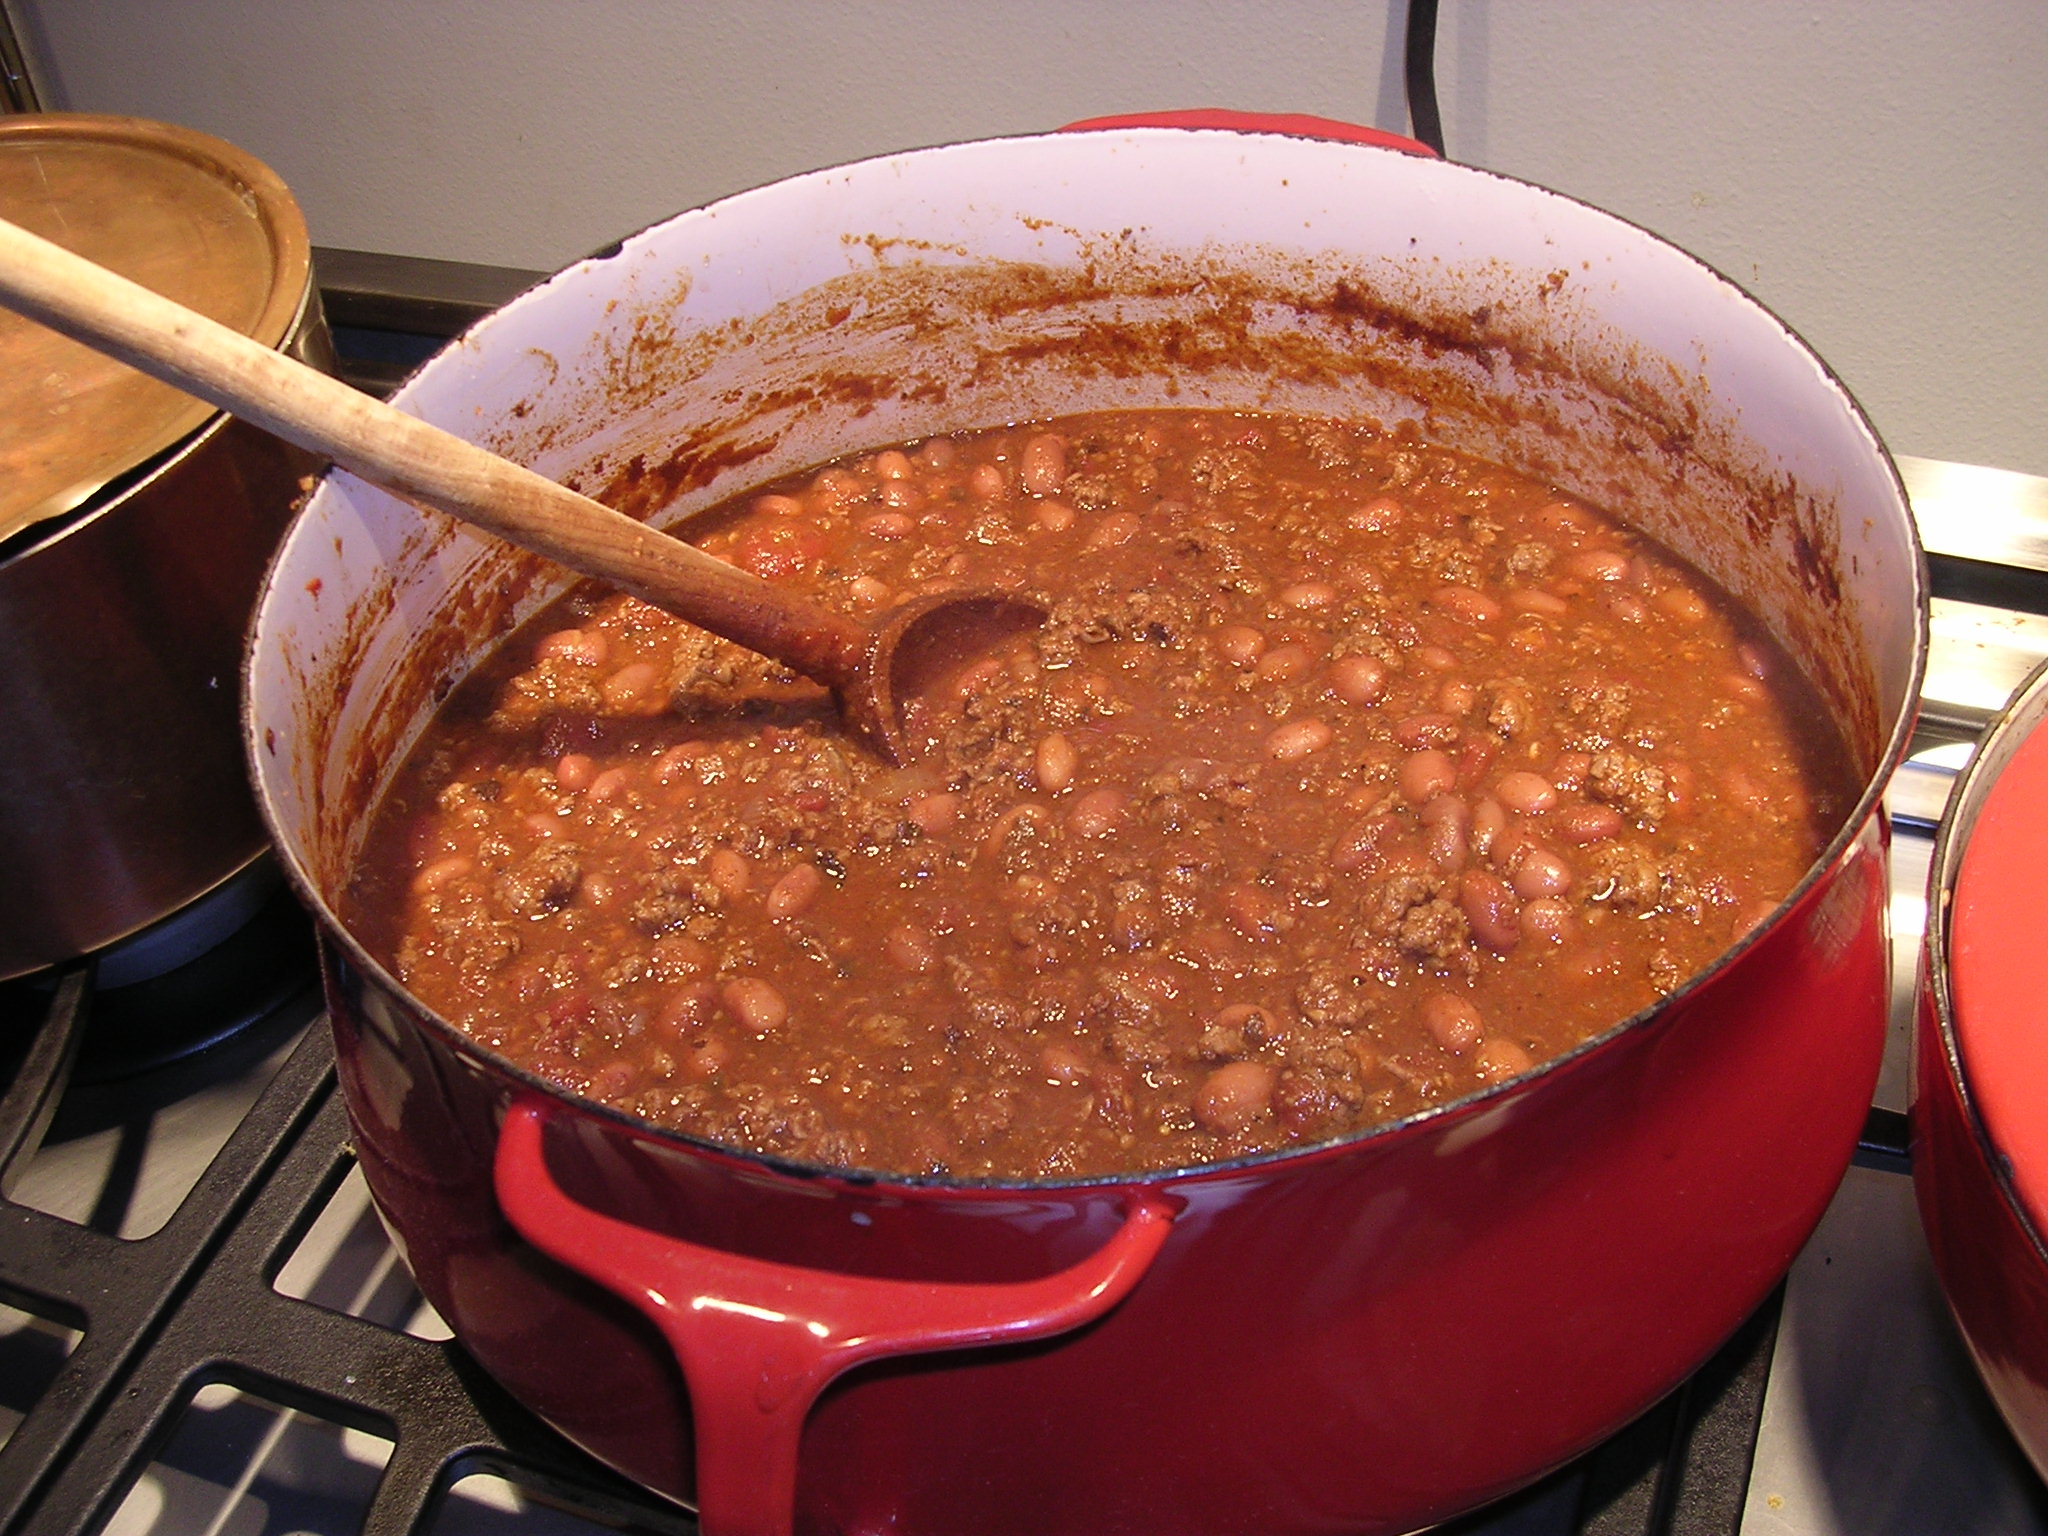 Homemade Chili Recipe From Scratch Chili Recipe Crock Pot Easy Beef with Beans Vegetarian Photos Pics Images